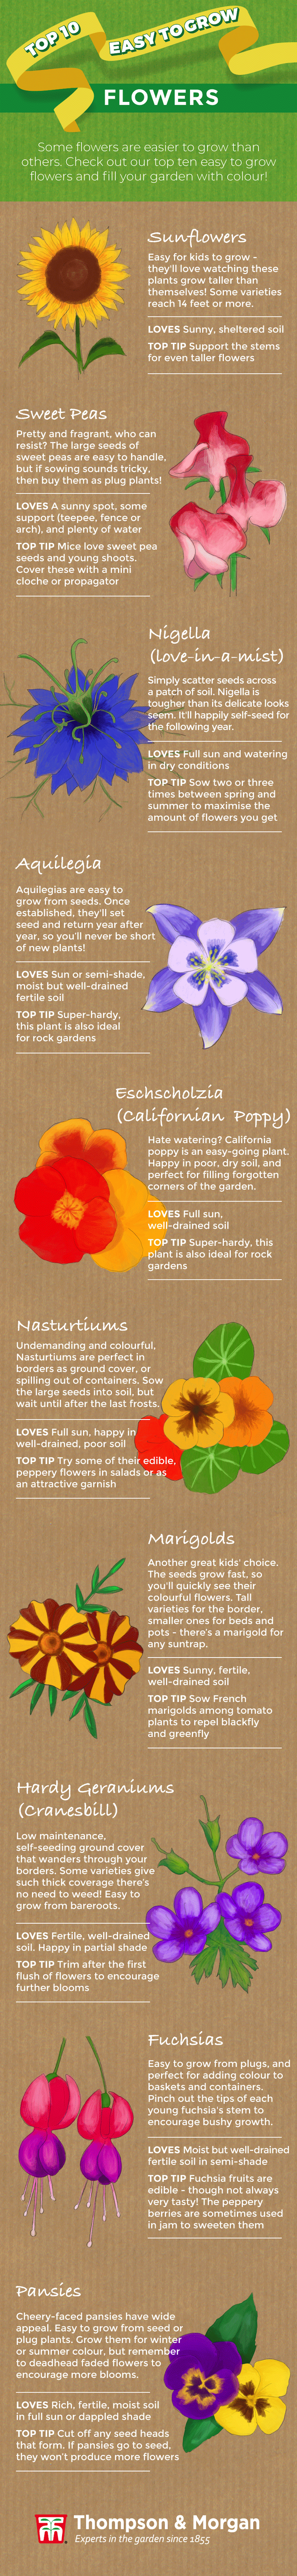 top ten easy to grow flowers infographic from thompson & morgan